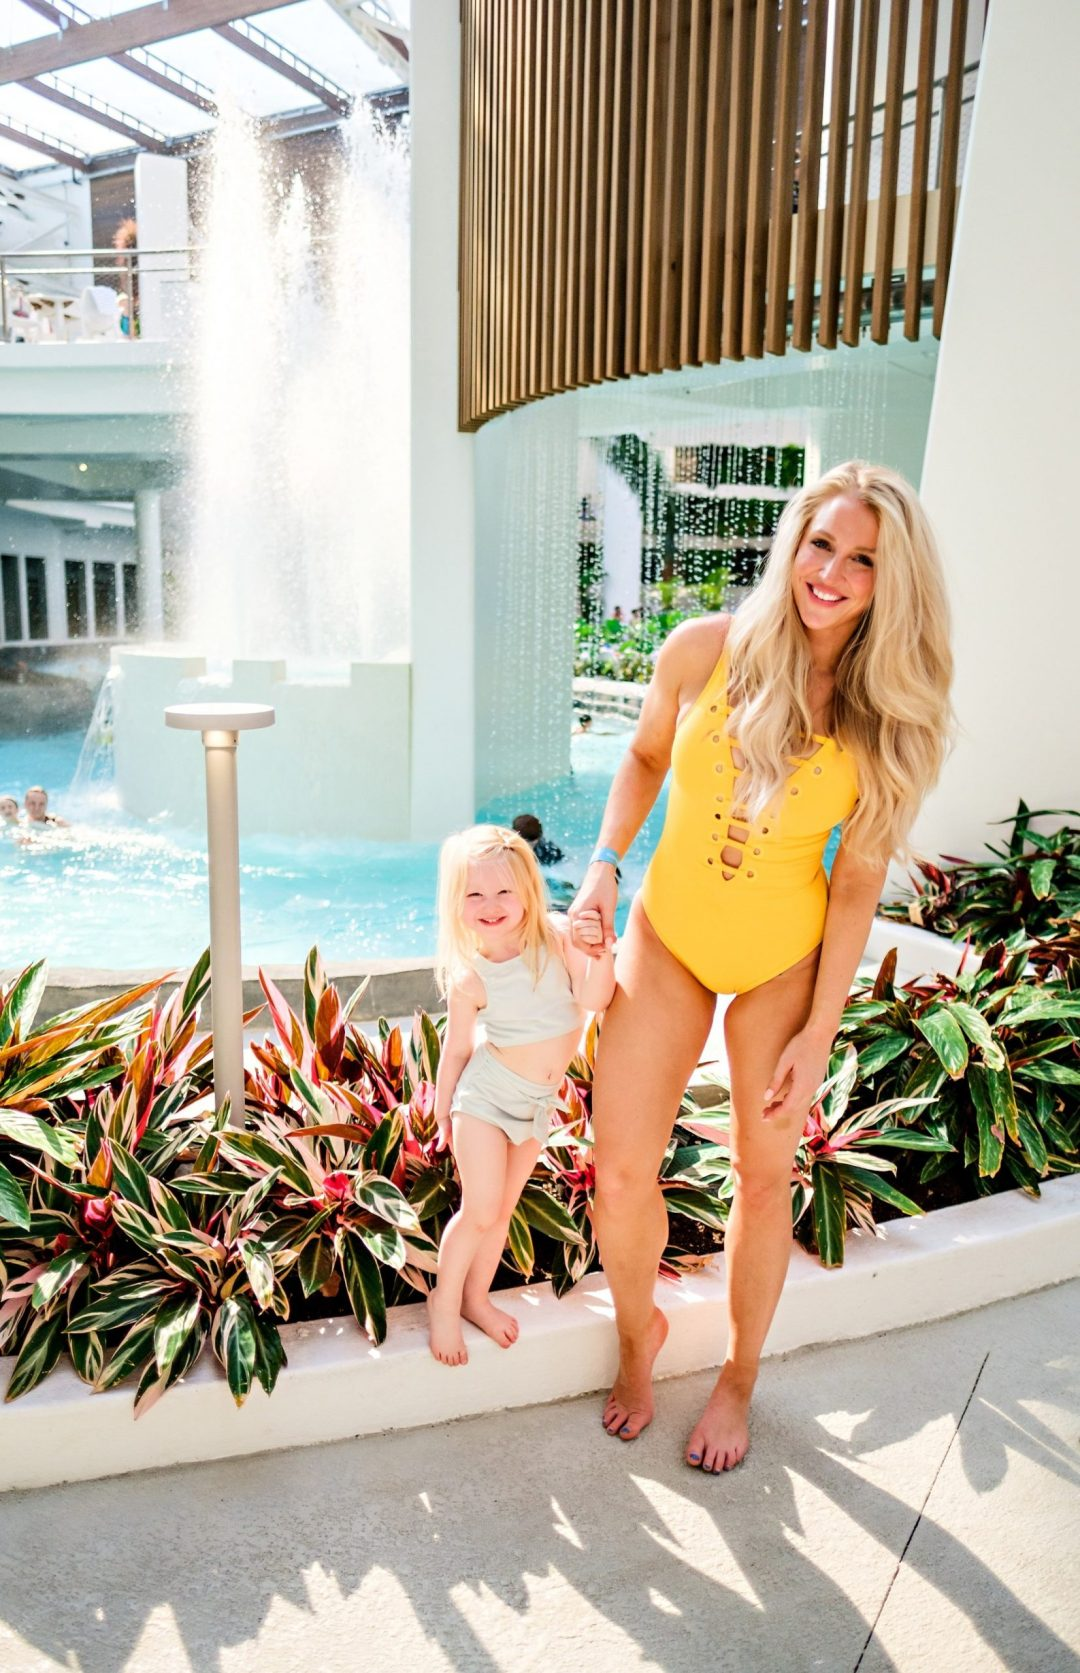 Need a full coverage bathing suit? Popular Atlanta Blogger Happily Hughes is sharing her top favorite full coverage bathing suits. Click to see them HERE!